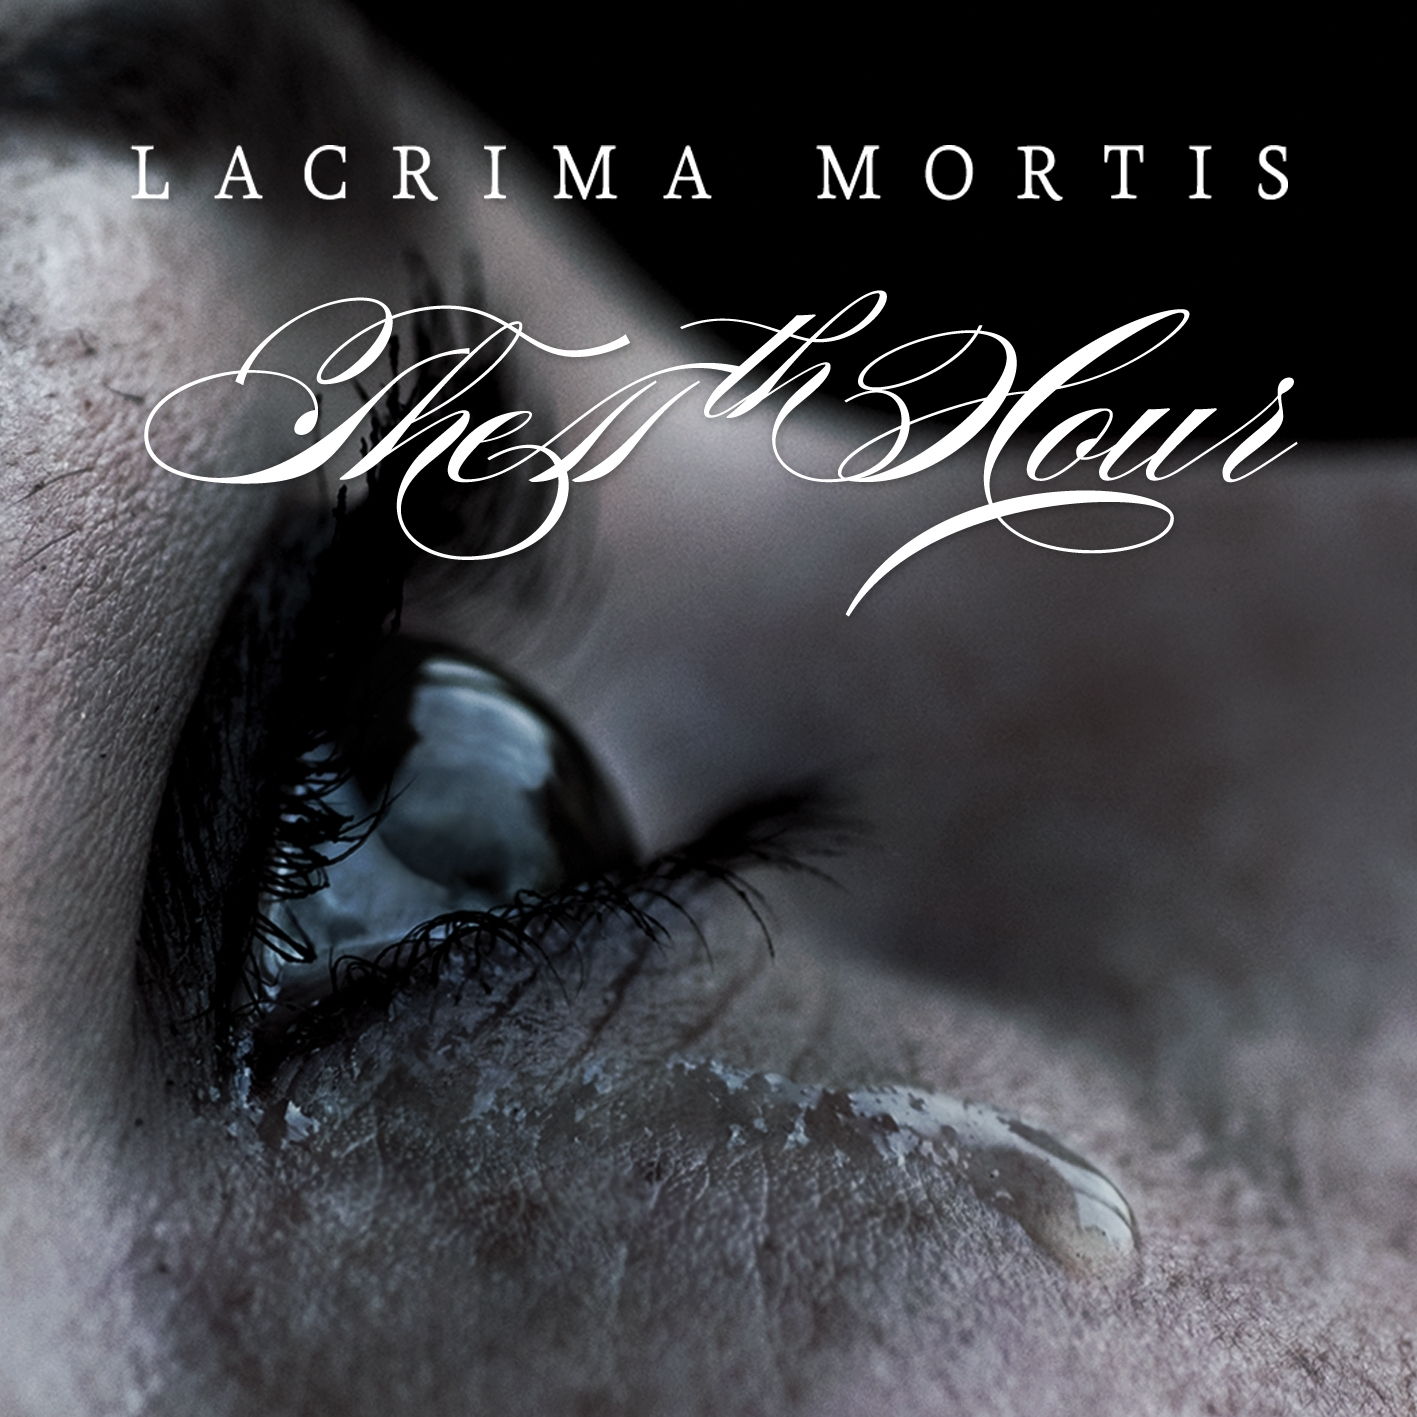 The 11th Hour – Lacrima Mortis Review